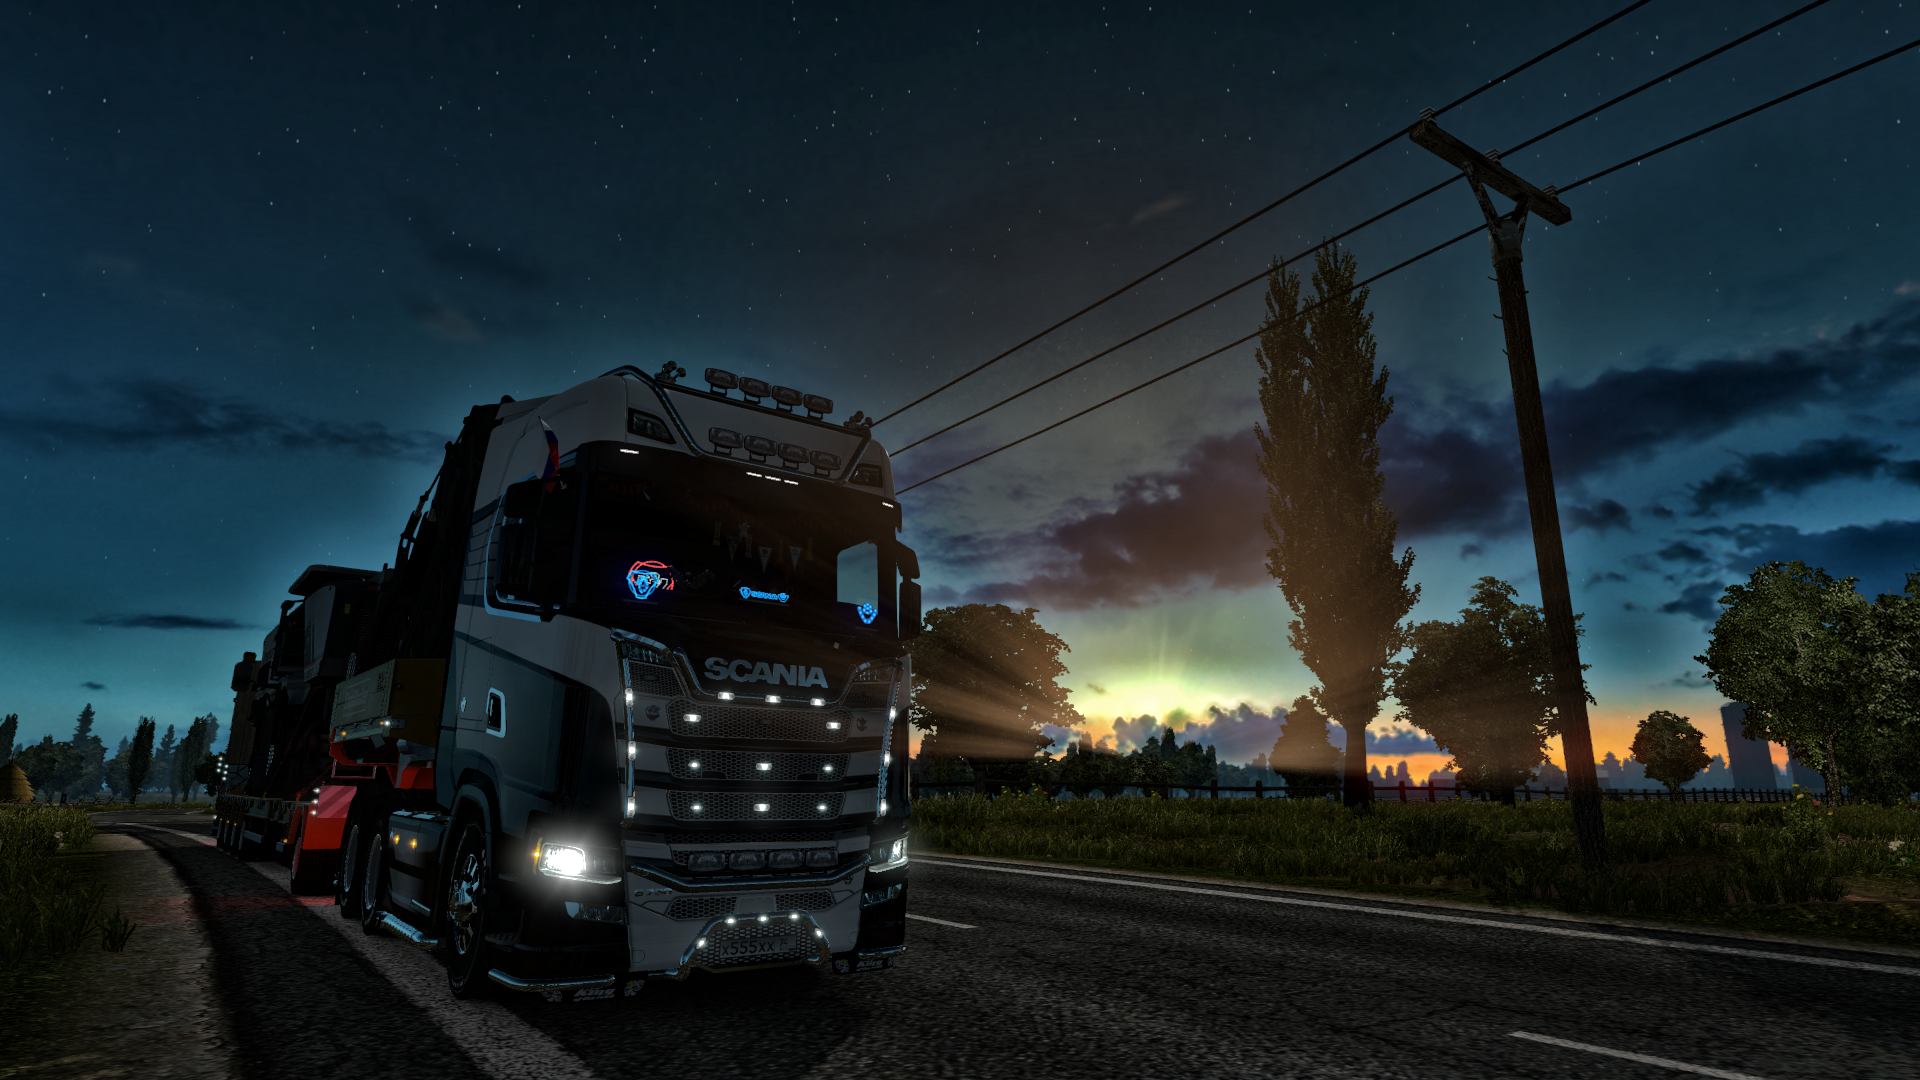 ets2_20190421_010146_00.png